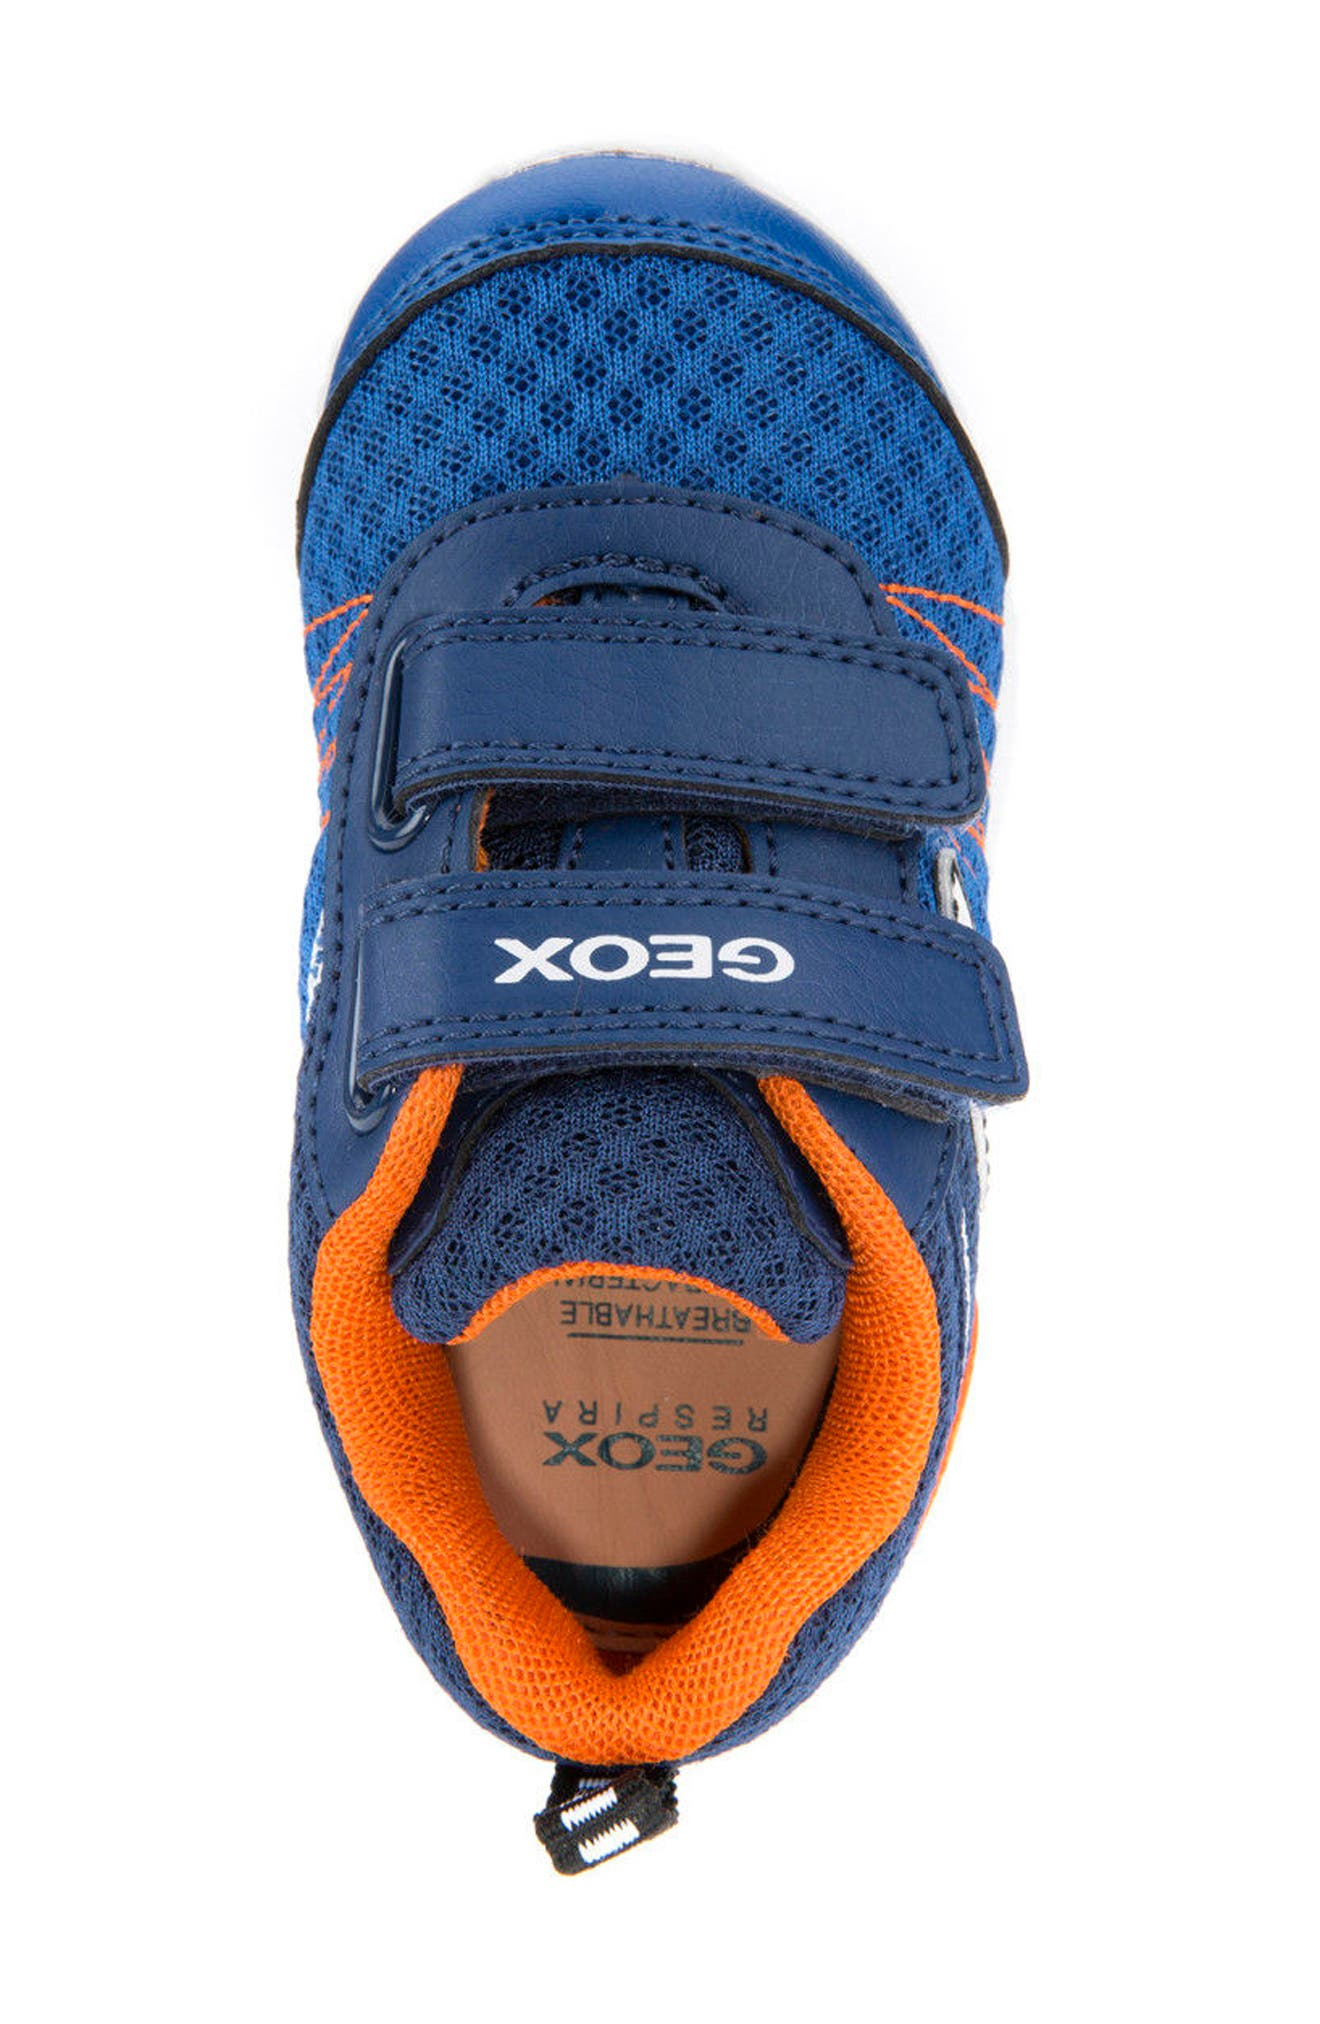 Waviness Waterproof Sneaker,                             Alternate thumbnail 4, color,                             NAVY/ ORANGE